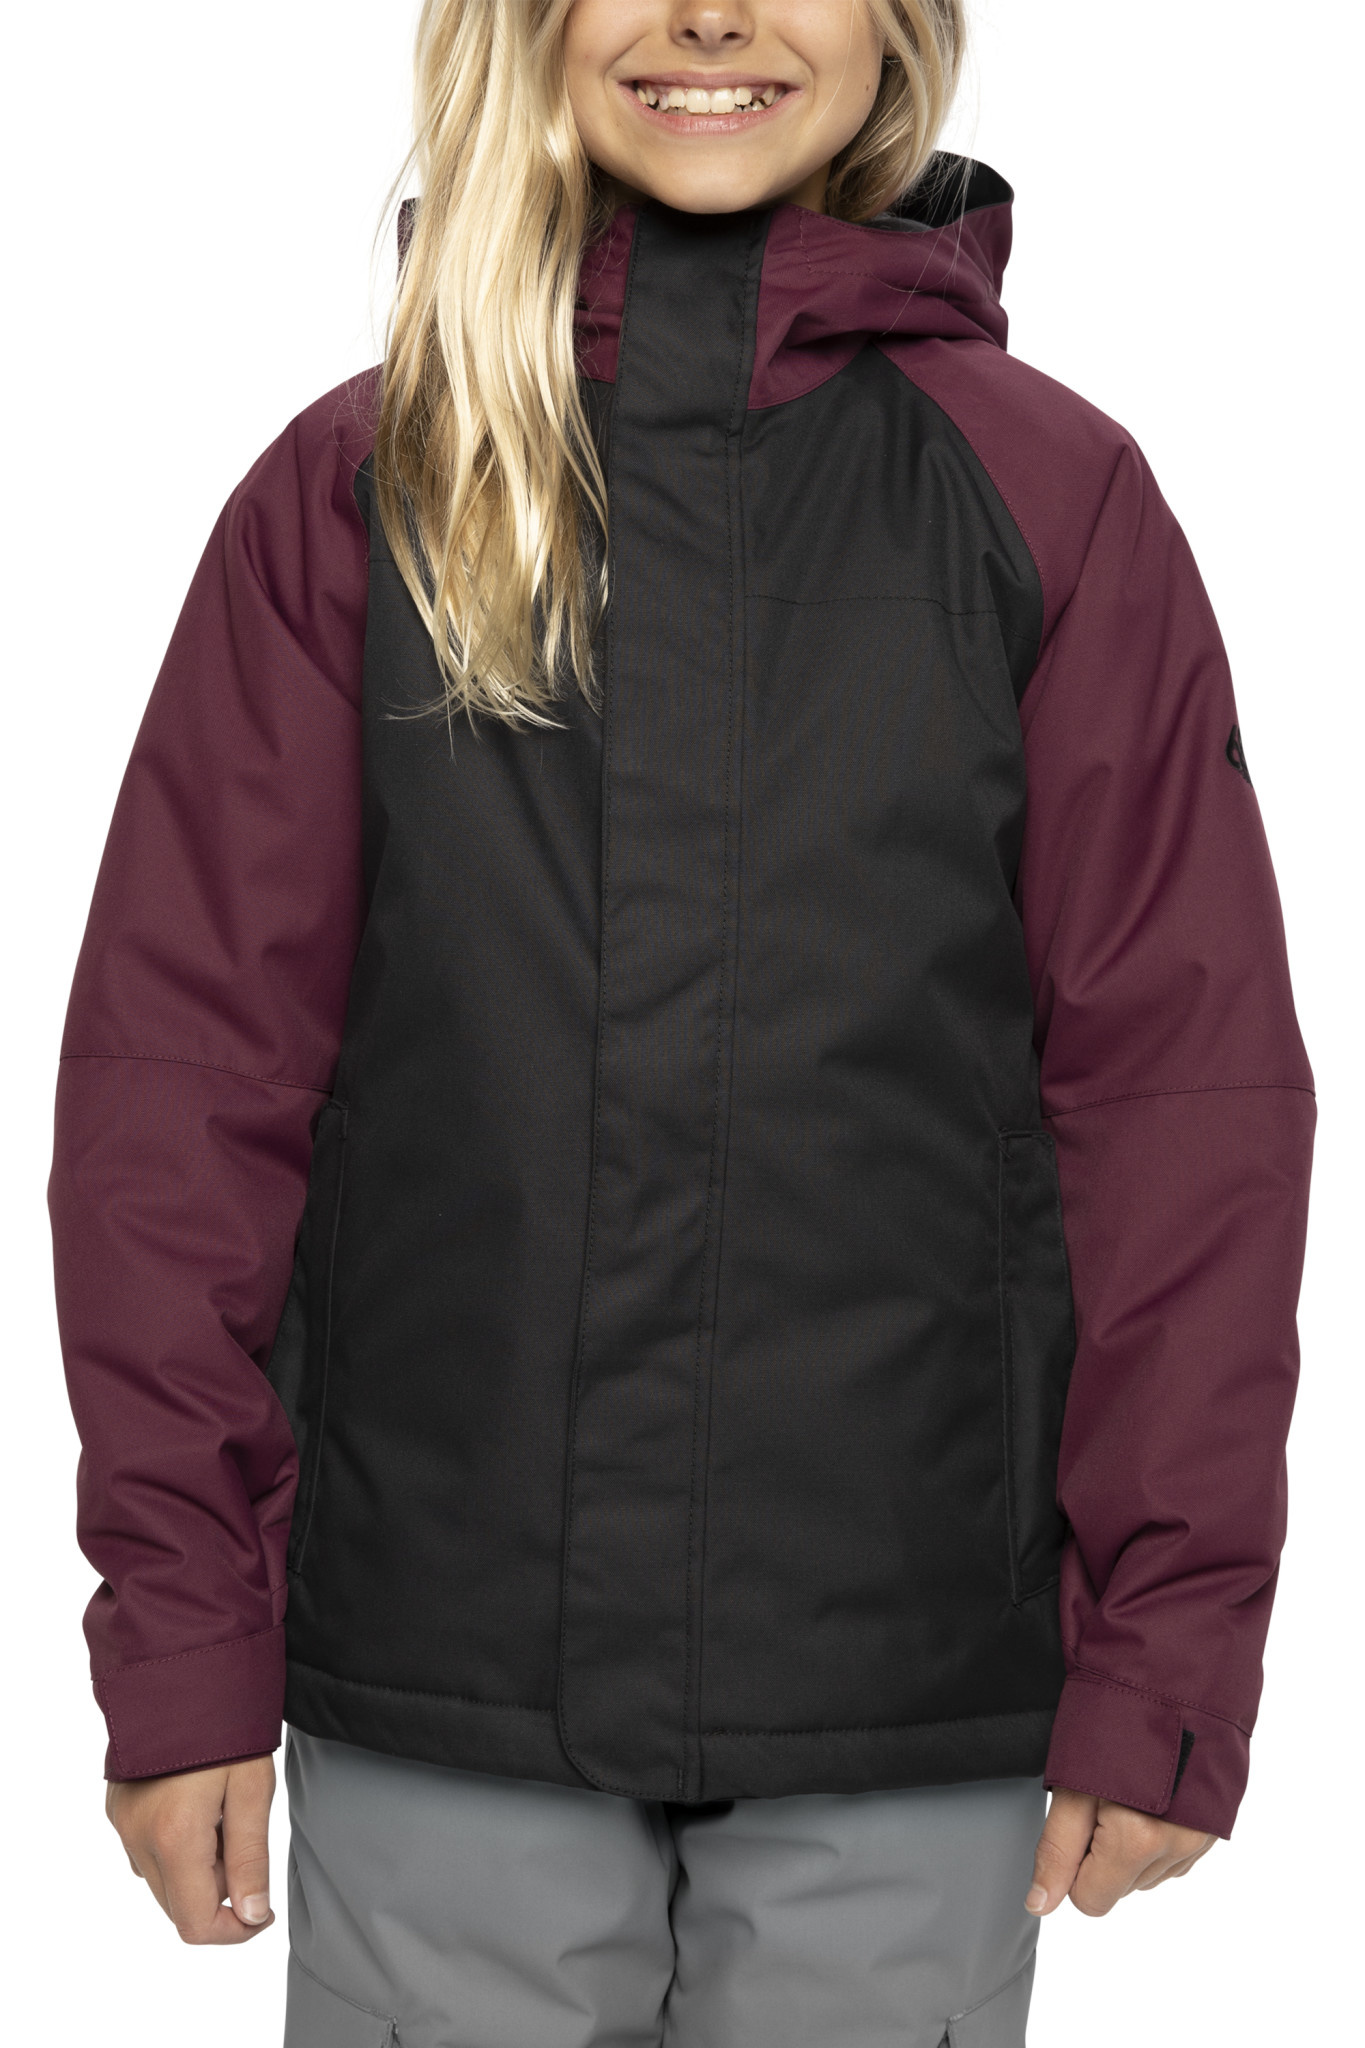 686 686 Girls Insulated Snow Jacket